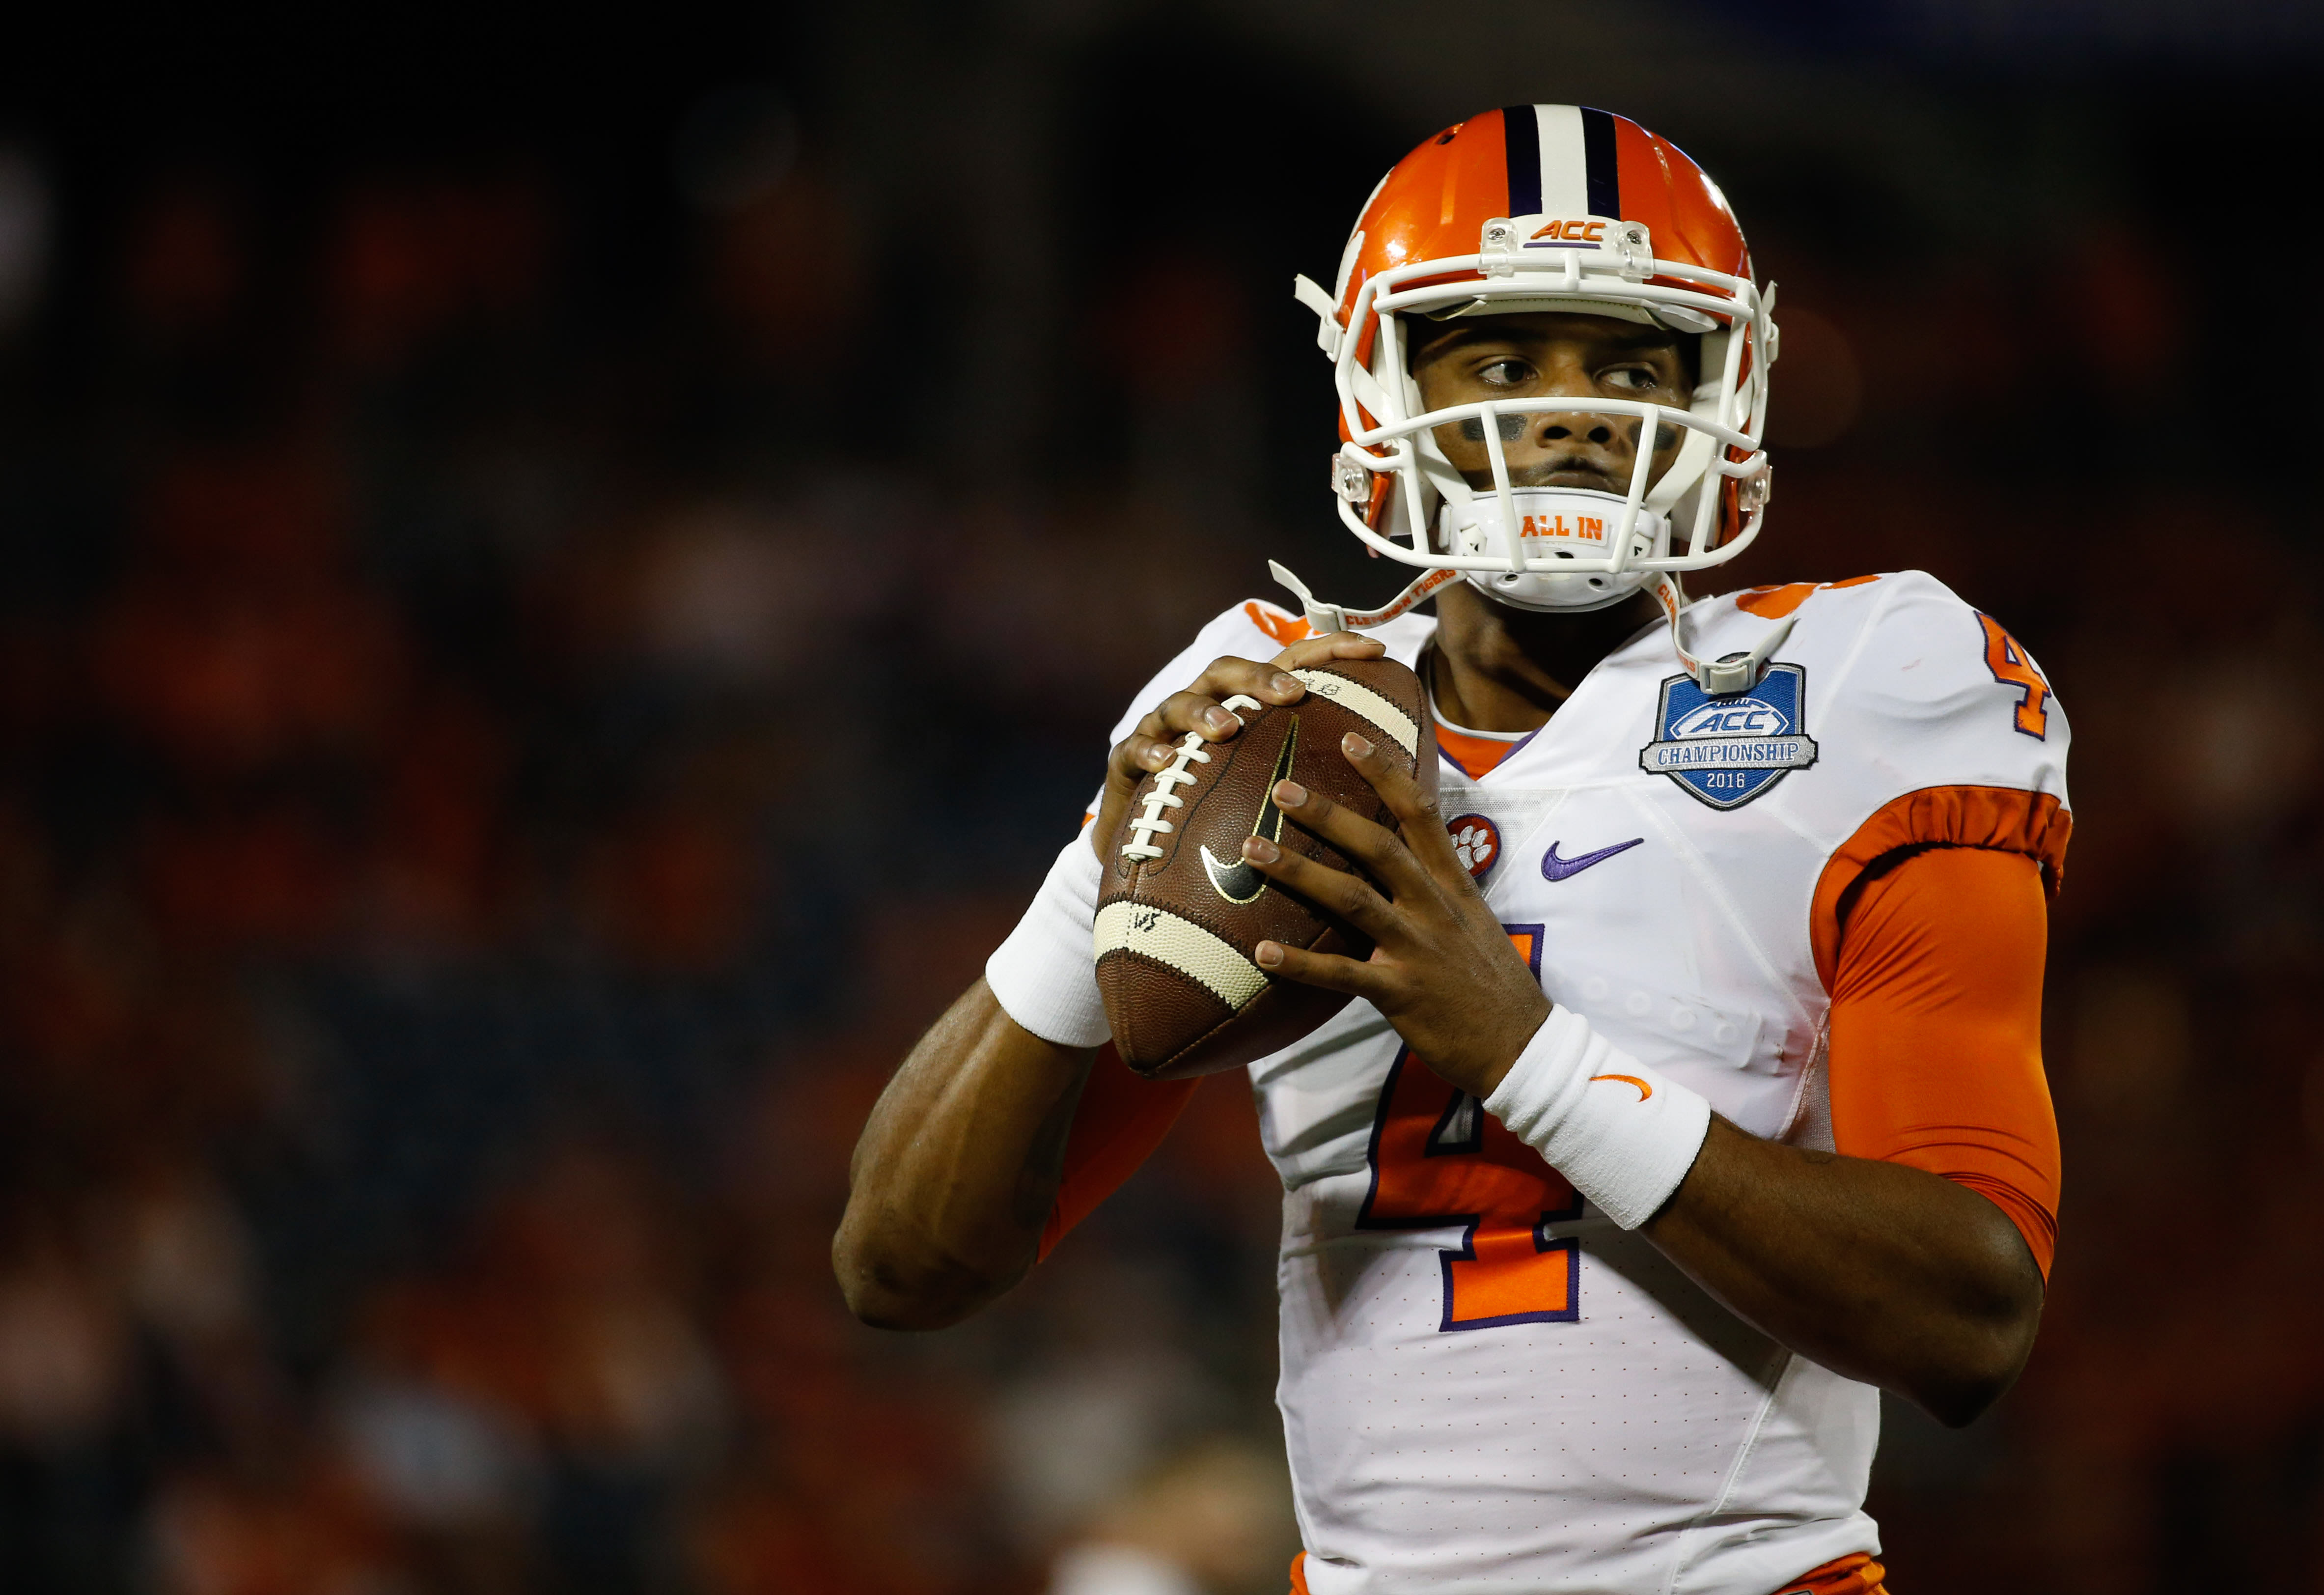 Deshaun Watson Named ACC Player of the Year: Latest